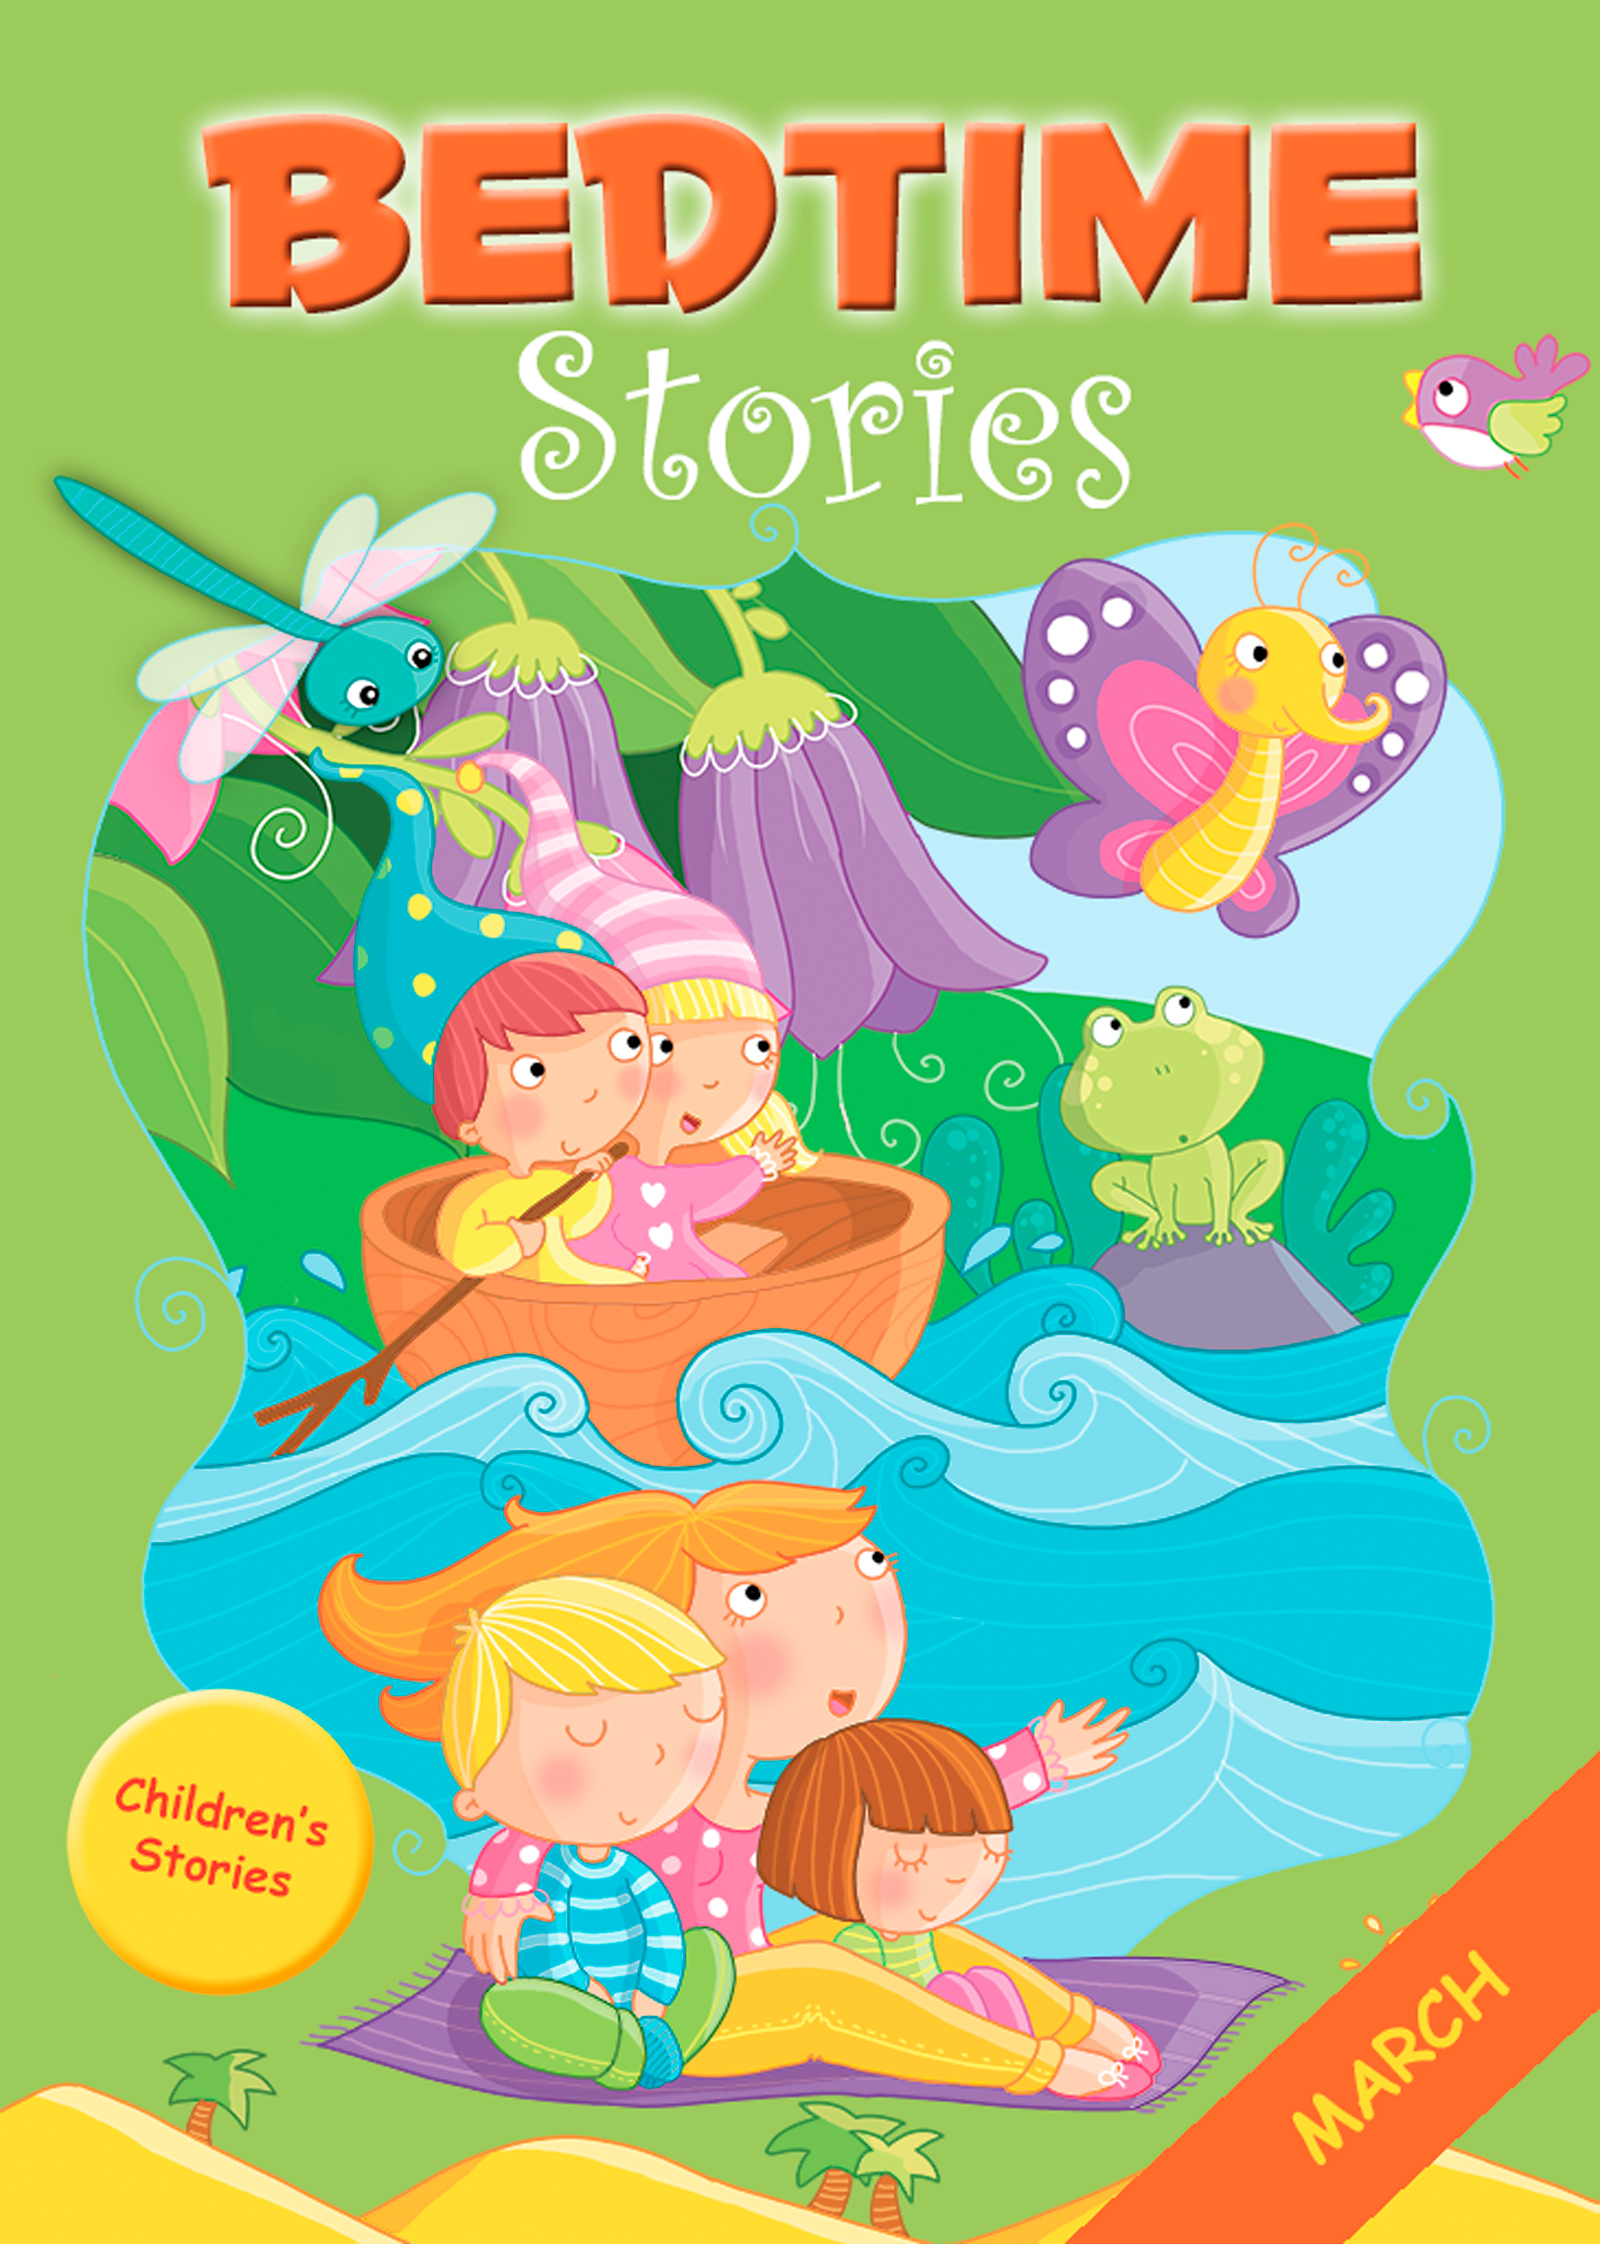 31 Bedtime Stories for March